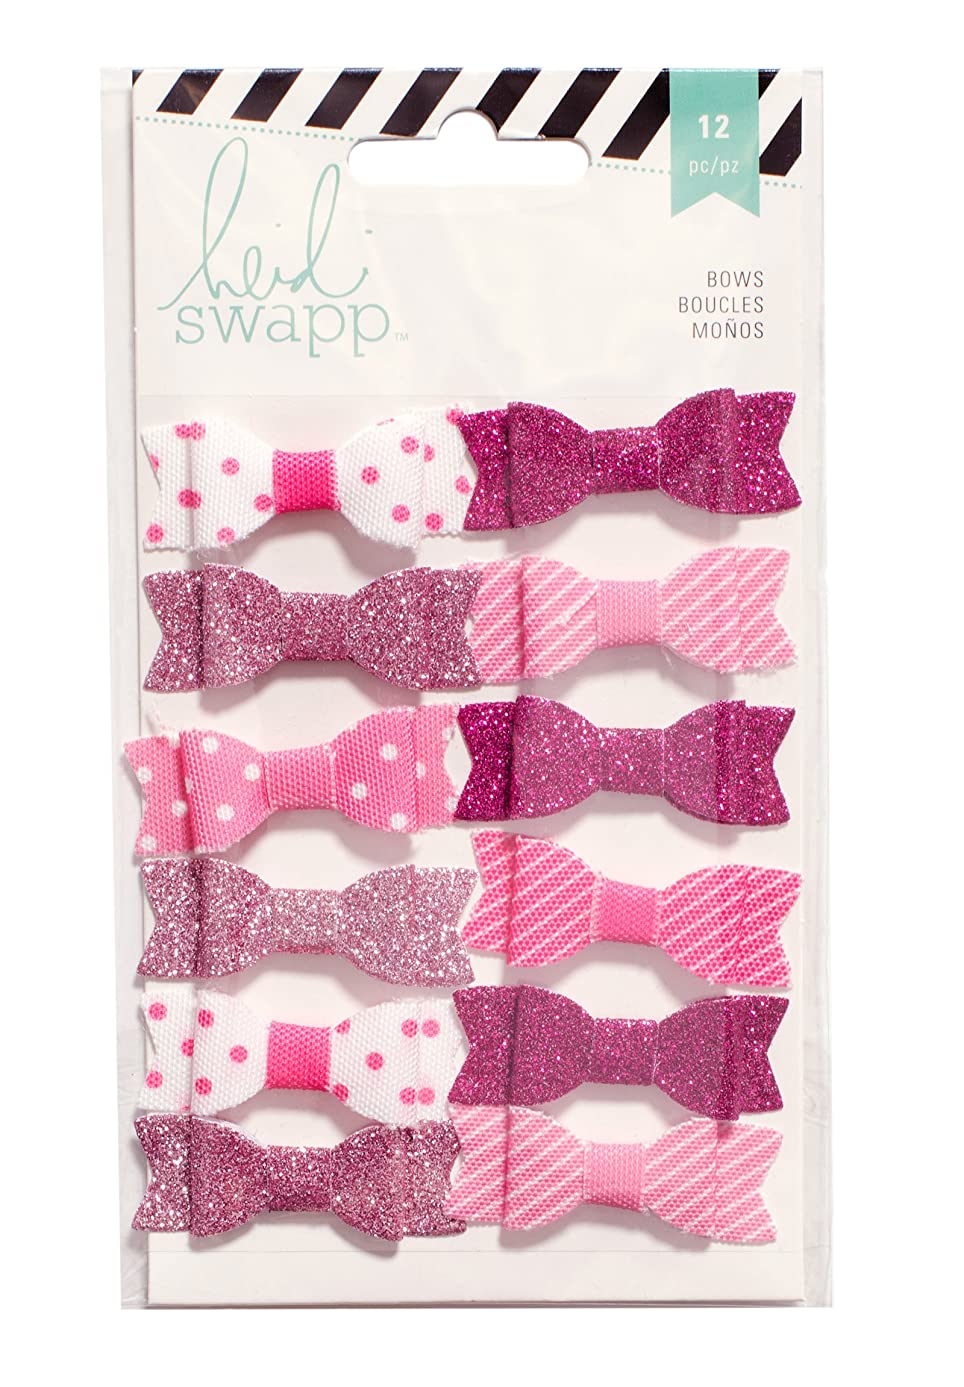 American Crafts Heidi Swapp Fabric Bows Pink & White 12 Piece